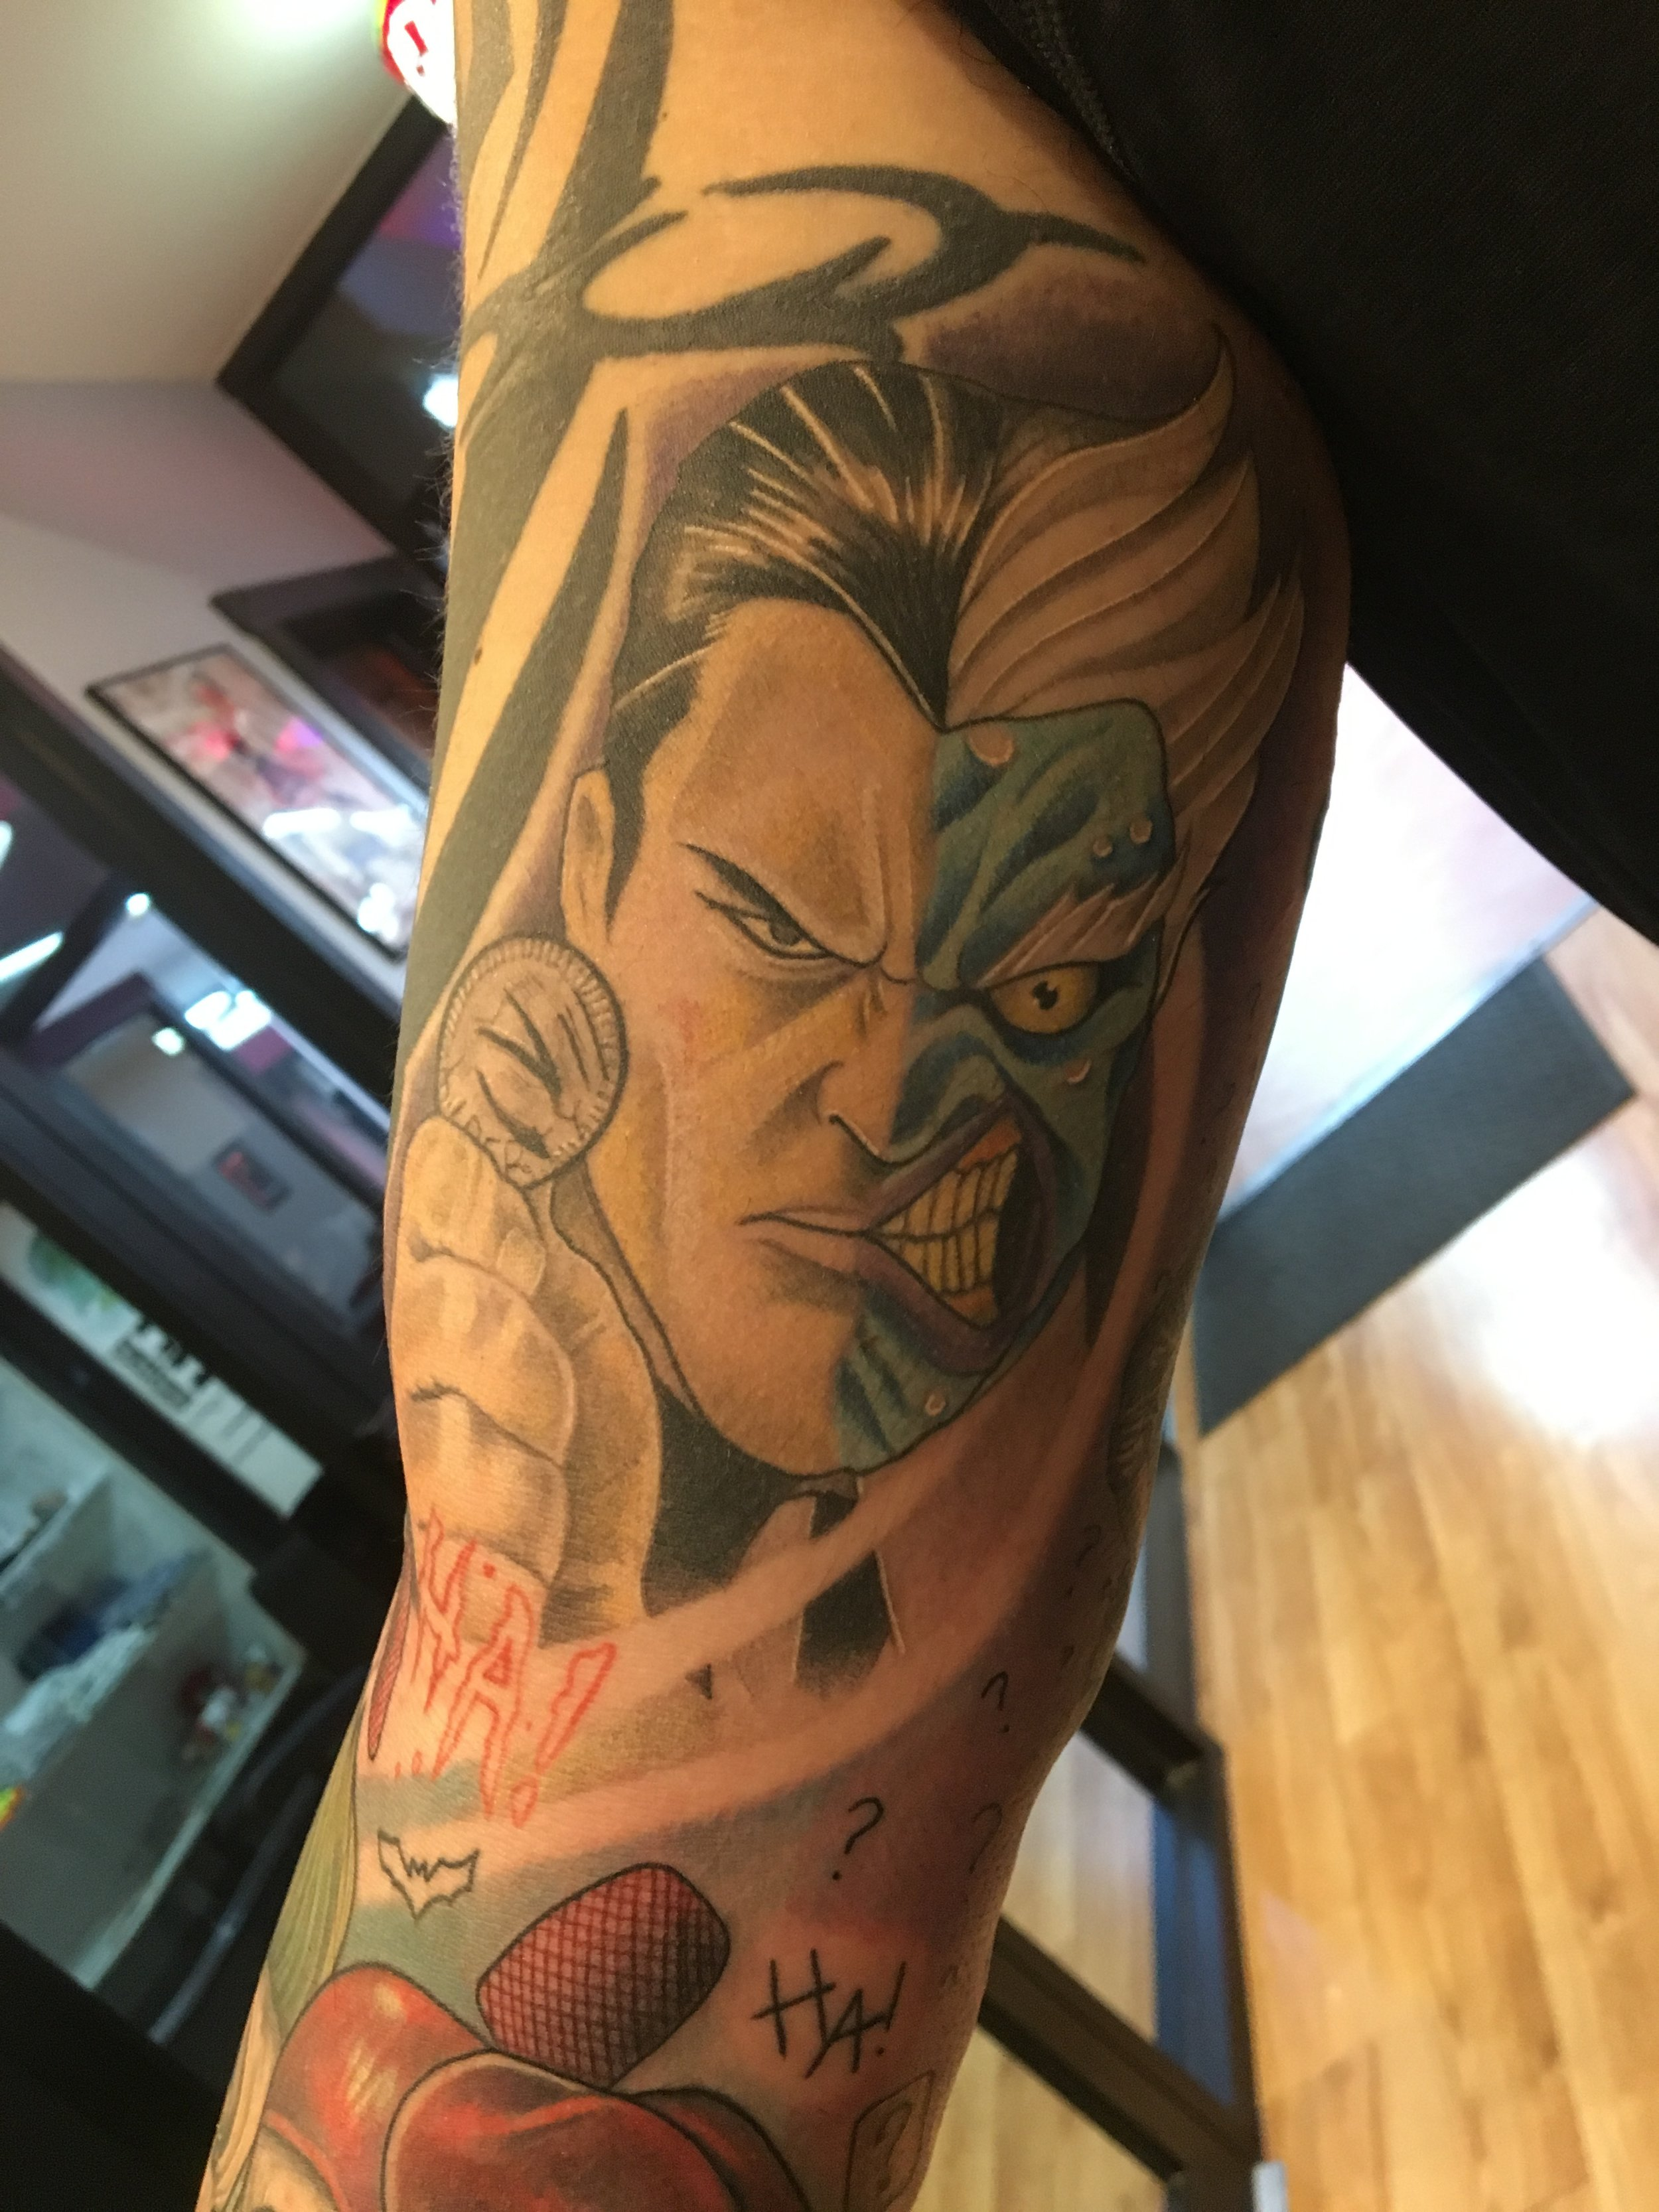 tattoo-two-face.JPG